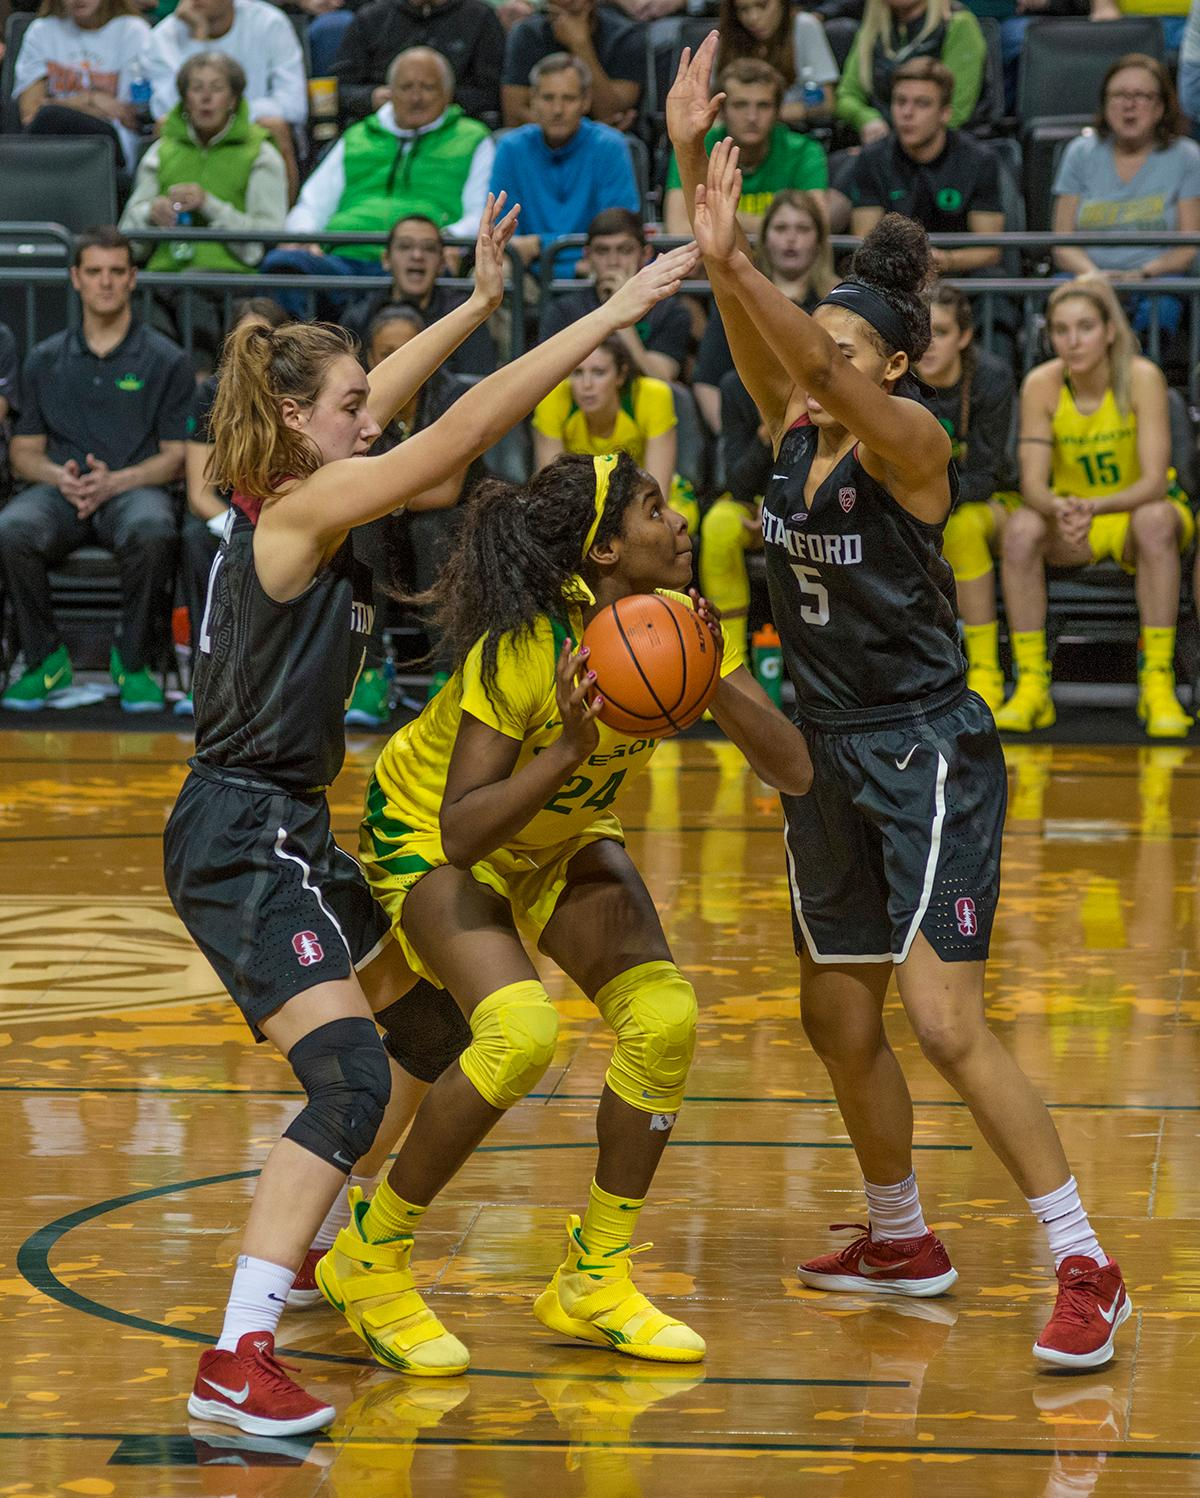 Oregon Ducks Ruthy Hebard (#24) looks for a shot. The Stanford Cardinal defeated the Oregon Ducks 78-65 on Sunday afternoon at Matthew Knight Arena. Stanford is now 10-2 in conference play and with this loss the Ducks drop to 10-2. Leading the Stanford Cardinal was Brittany McPhee with 33 points, Alanna Smith with 14 points, and Kiana Williams with 14 points. For the Ducks Sabrina Ionescu led with 22 points, Ruthy Hebard added 16 points, and Satou Sabally put in 14 points. Photo by Dan Morrison, Oregon News Lab